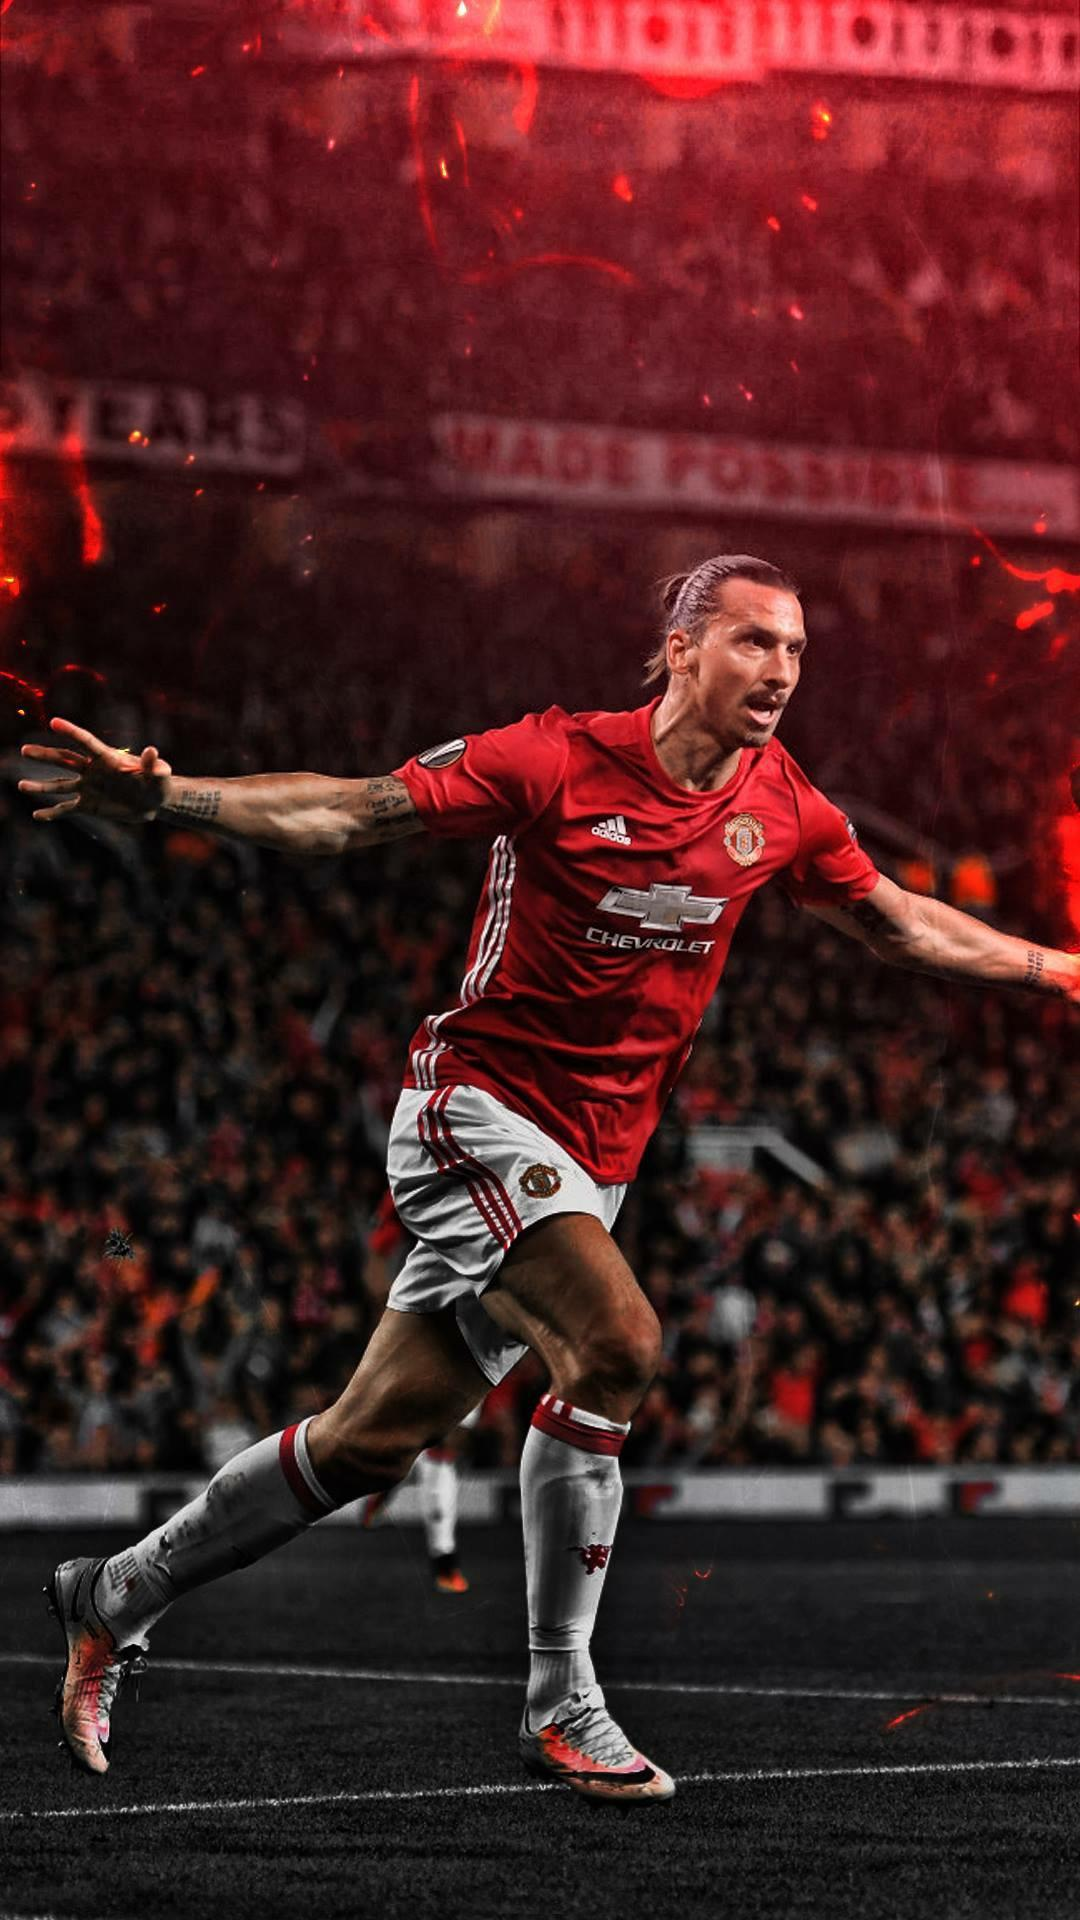 Zlatan Ibrahimovic Wallpapers HD for Android   APK Download 1080x1920